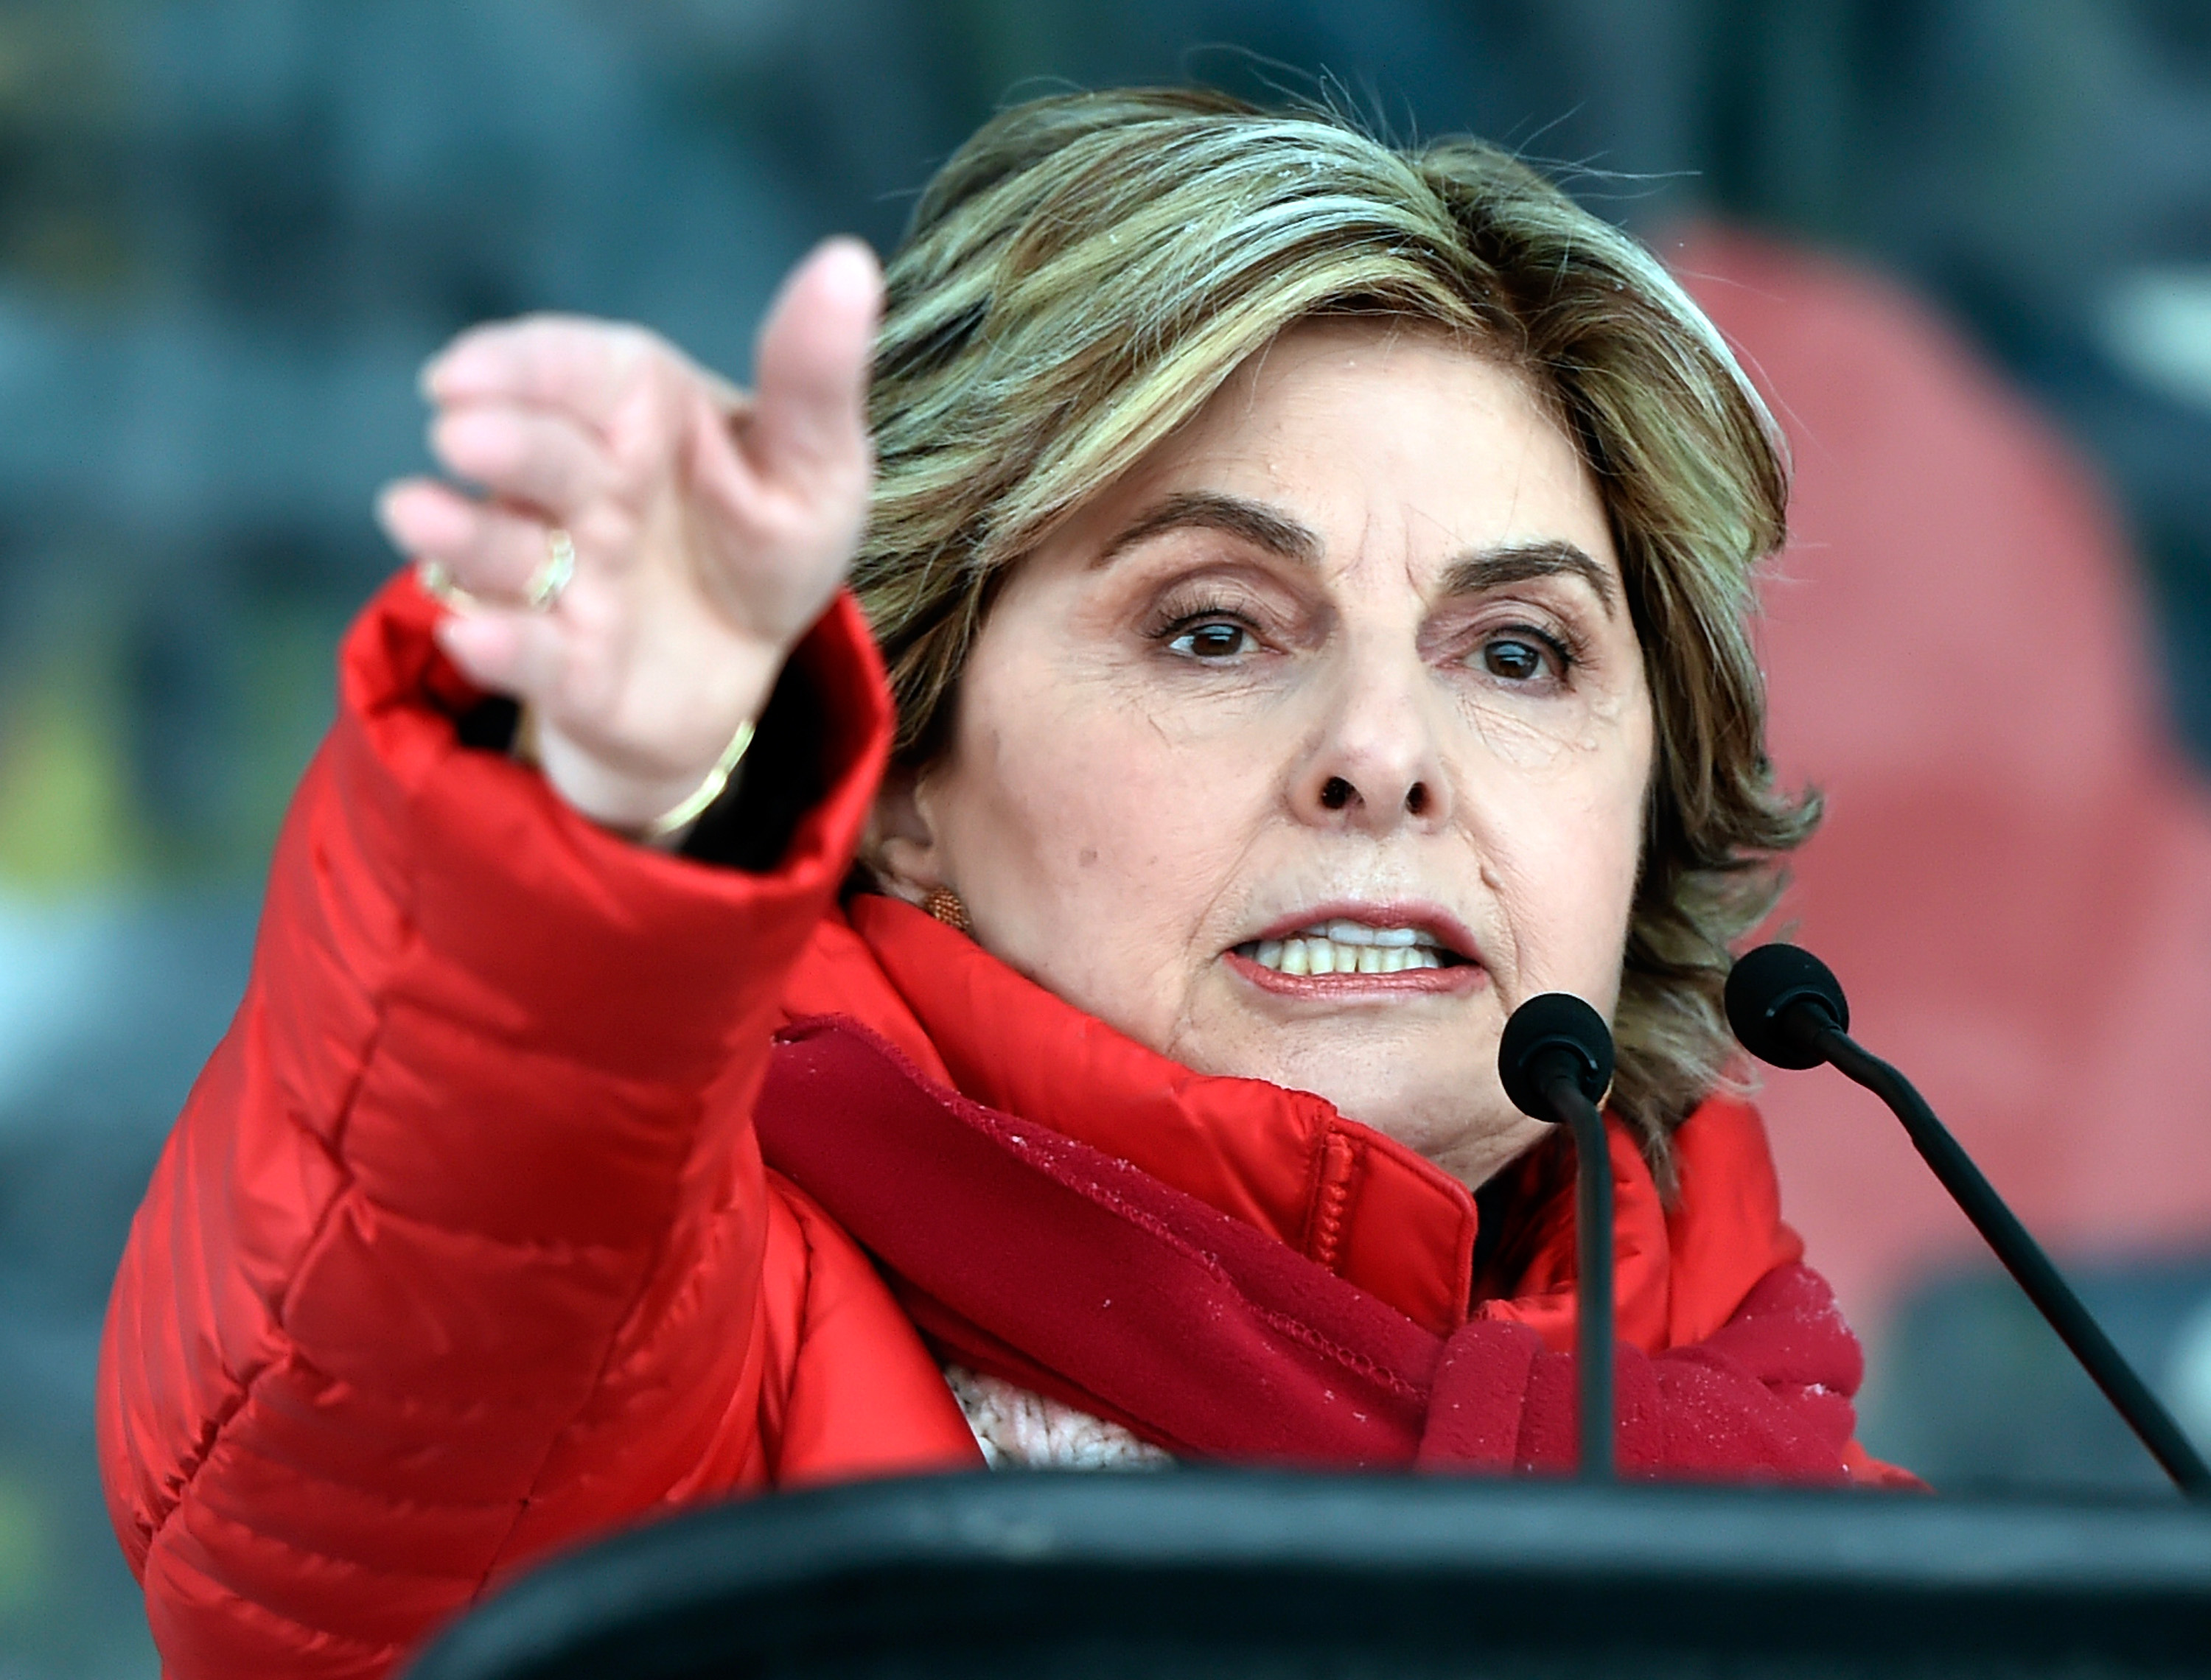 Gloria Allred resurrected the Equal Rights Amendment at the 2018 Women's March